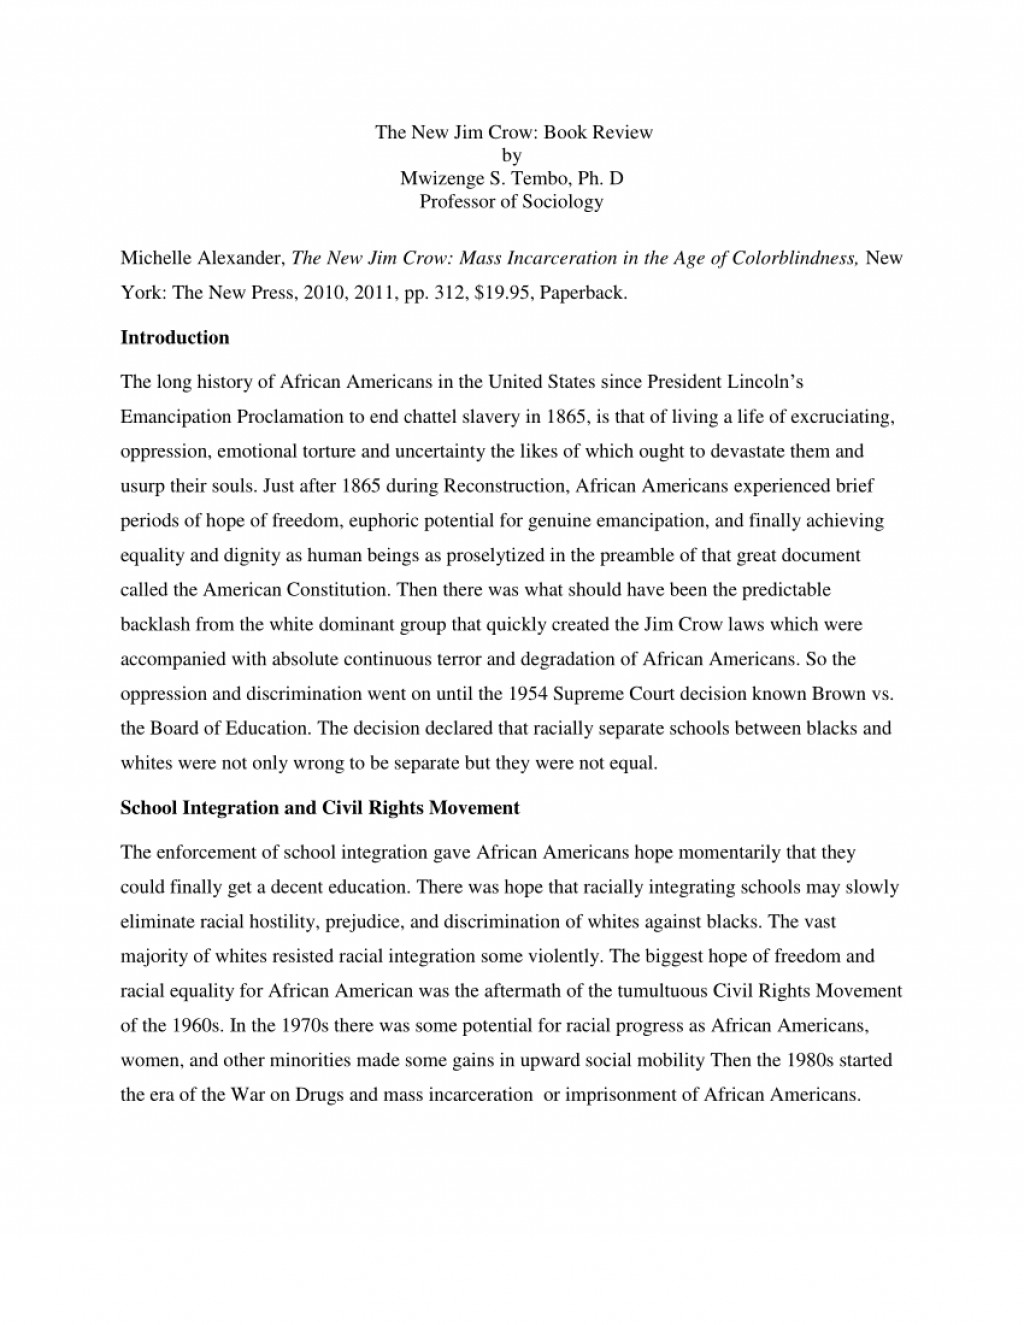 017 Example Of Result And Discussion In Research Paper Pdf Jim Crow Laws Essay Topics The New Book Review Writing Prompt Titles Fearsome Large